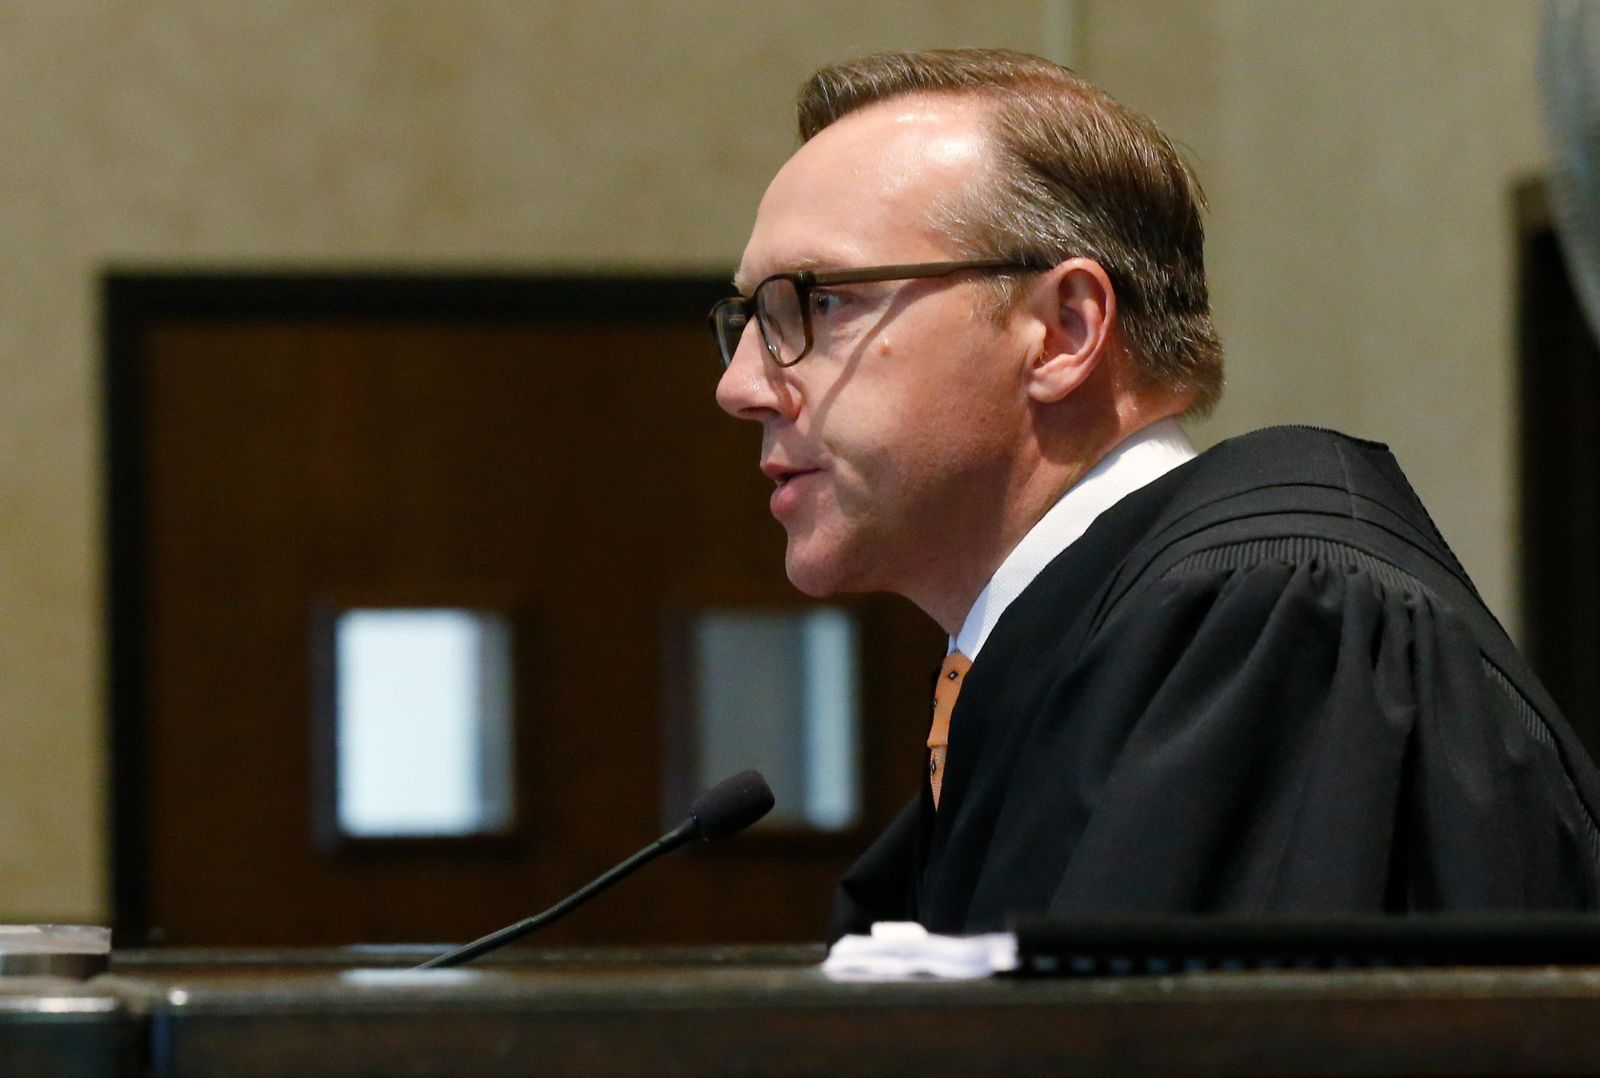 Judge Thad Balkman speaks at the conclusion of closing arguments in Oklahoma's ongoing opioid drug lawsuit against Johnson & Johnson, Monday, July 15, 2019, in Norman, Okla. (AP Photo/Sue Ogrocki, Pool)